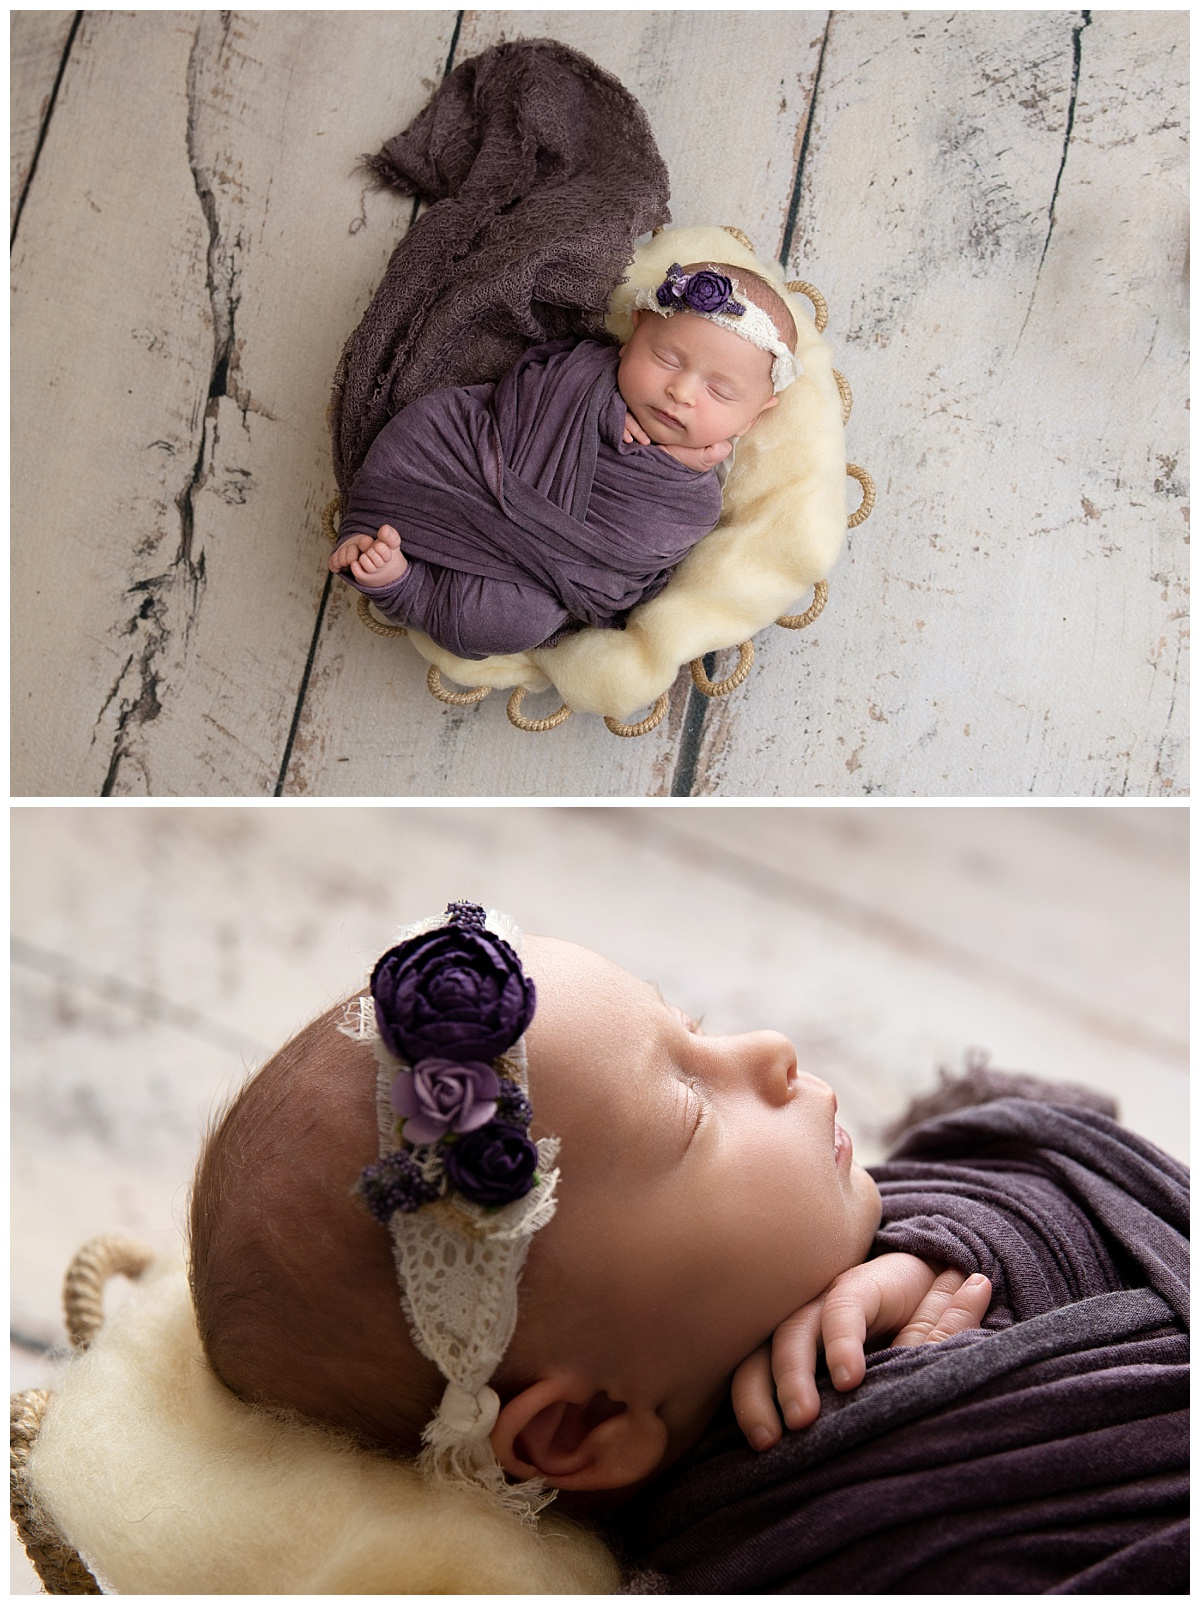 st-louis-newborn-photographer-baby-girl-wrapped-in-purple-on-rustic-cream-floor.jpg